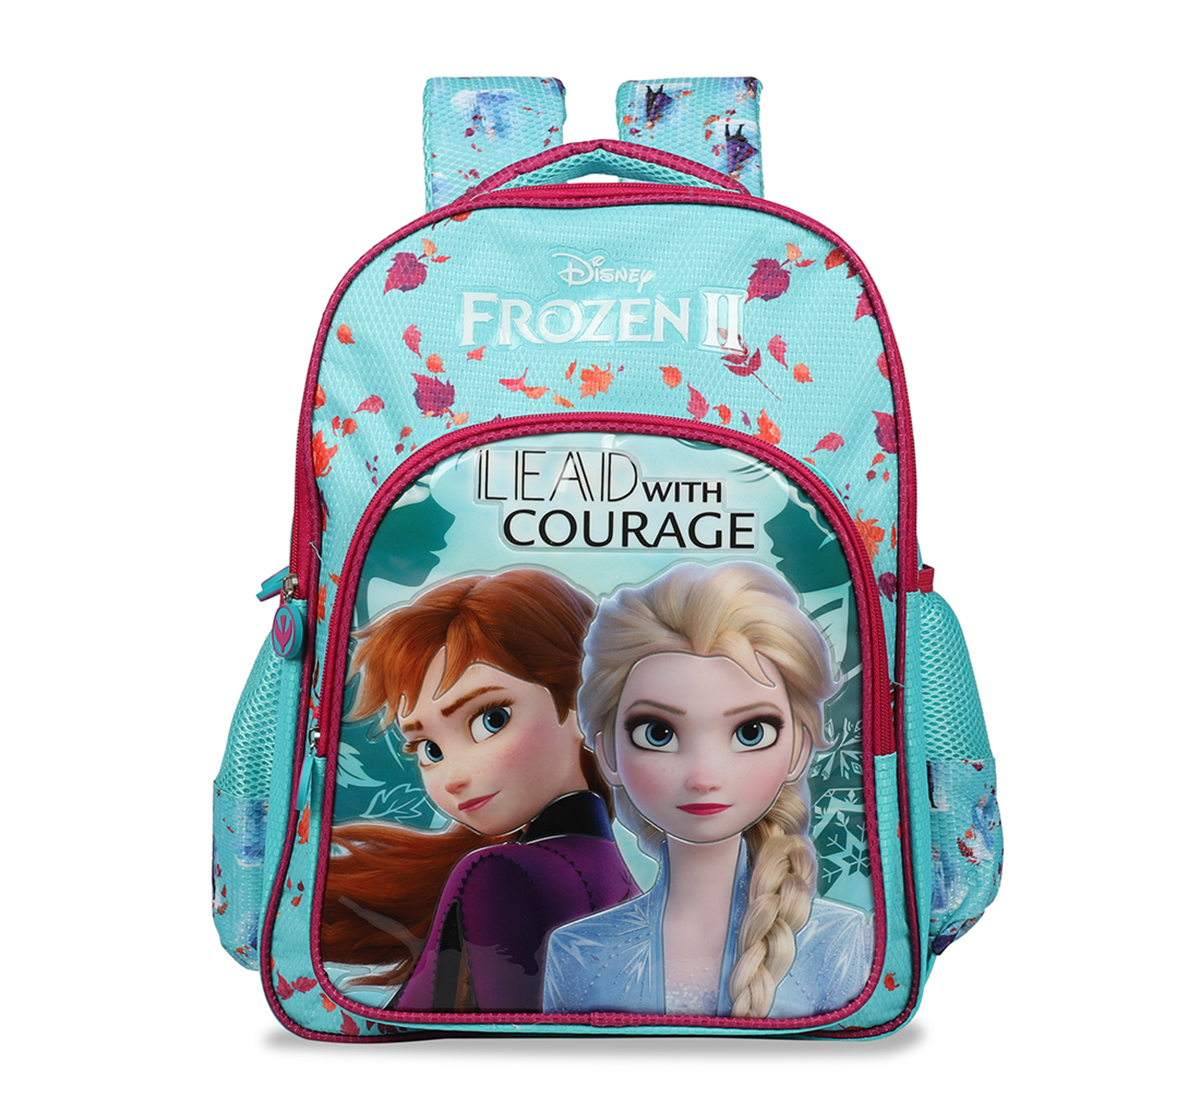 Disney | Disney Frozen2 Lead With Courage School Bag 36 Cm Bags for Girls age 3Y+ (Turquoise)